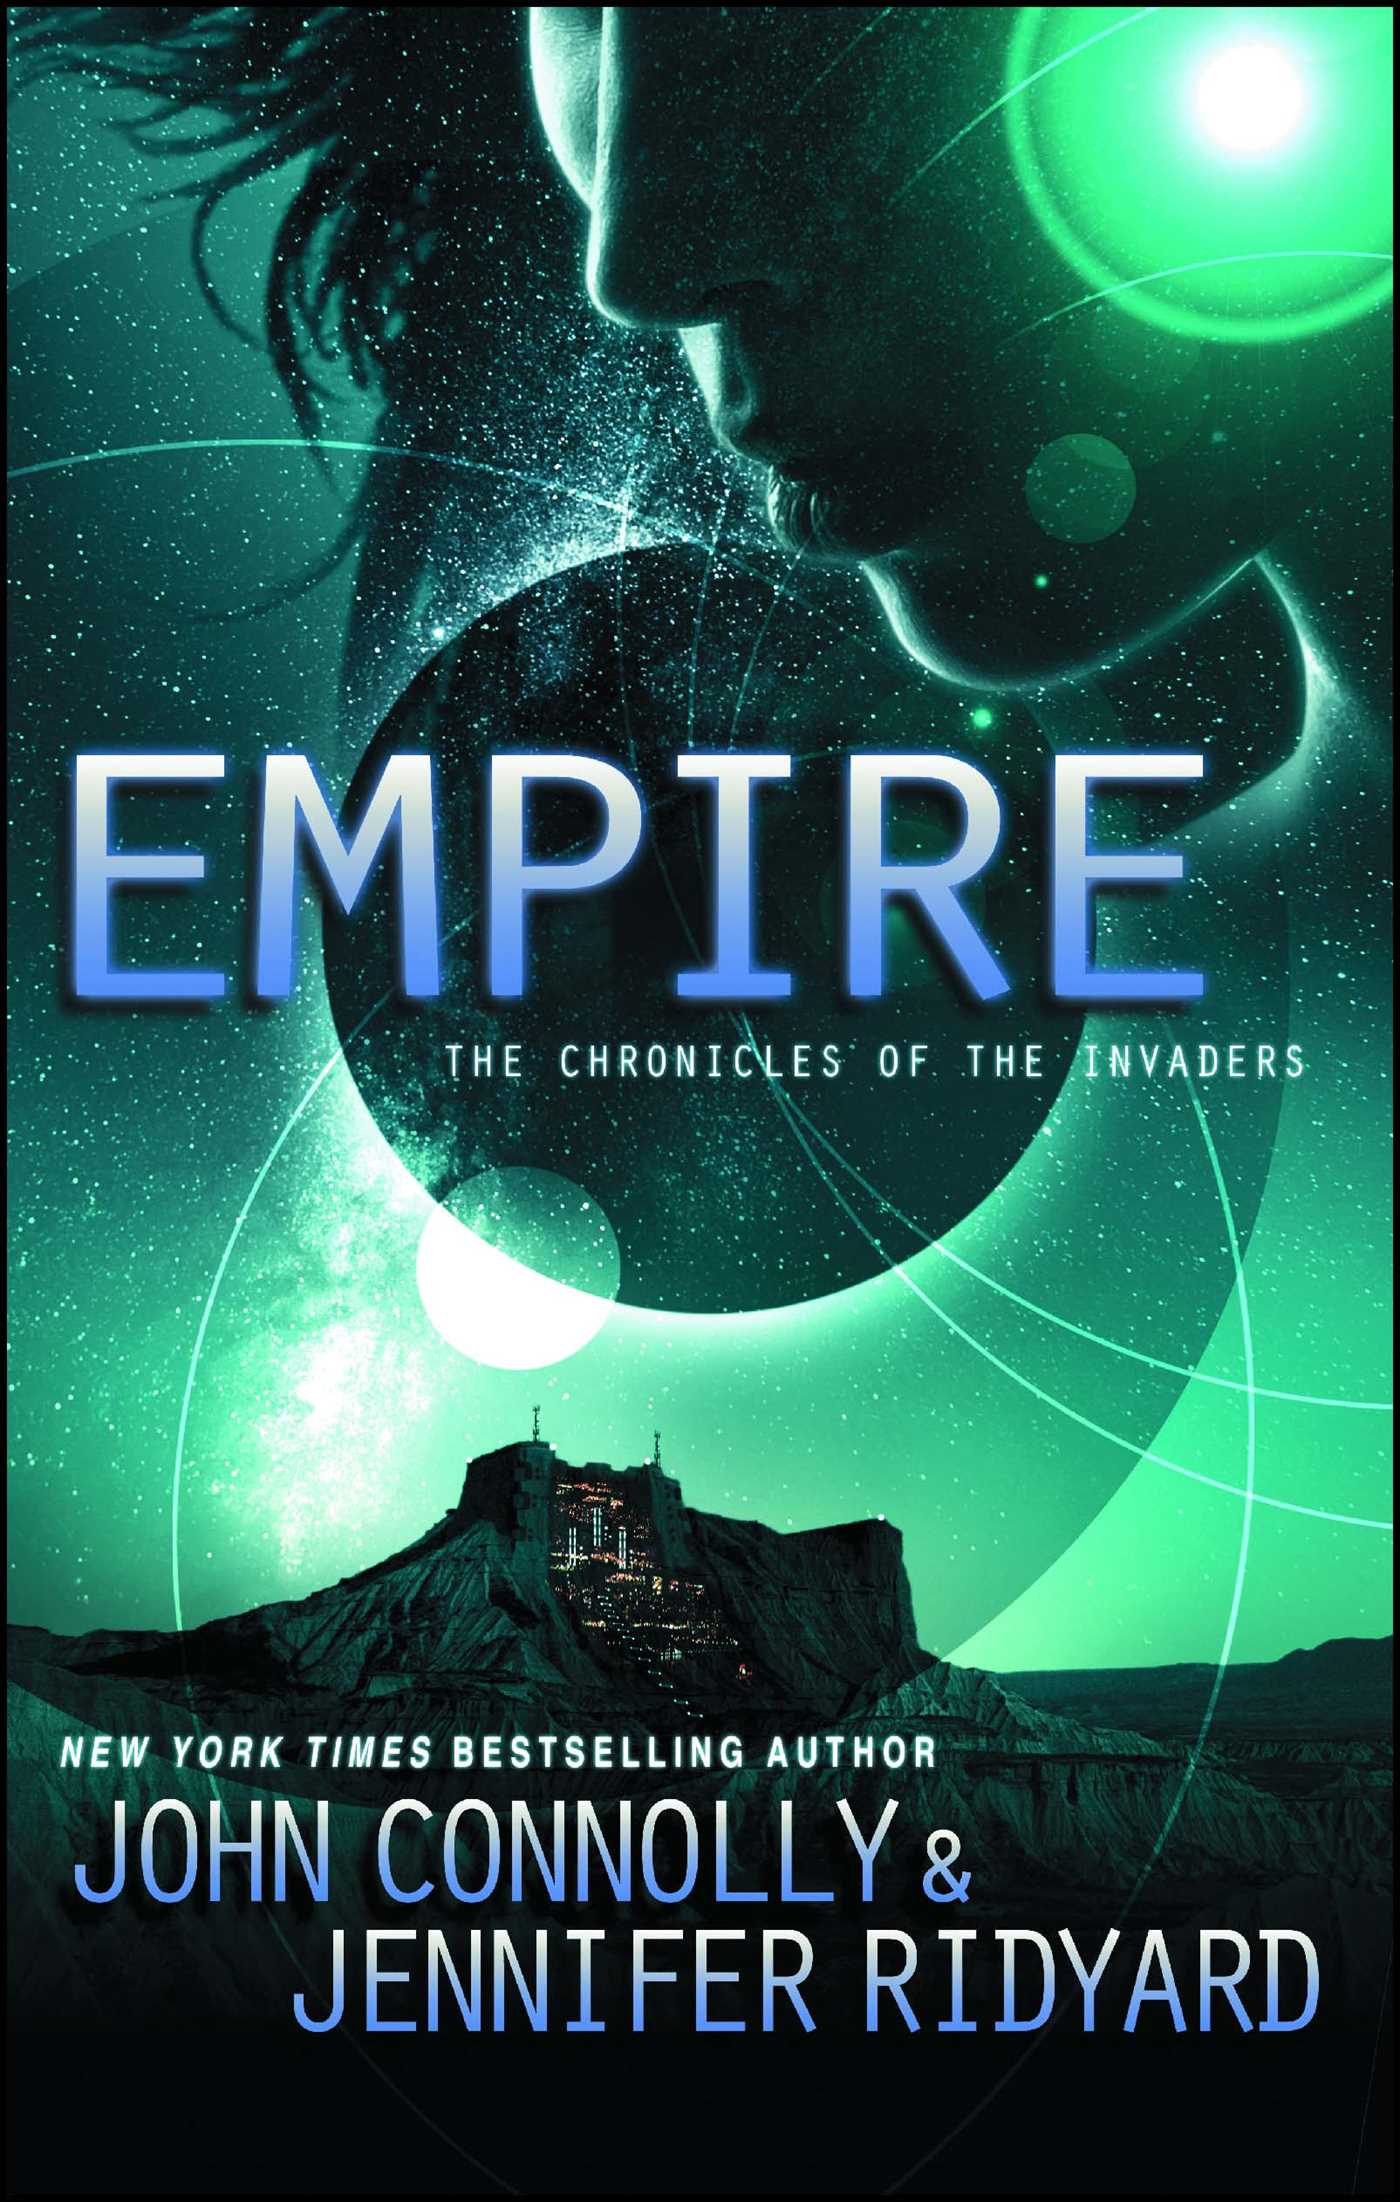 Empire 9781476757162 hr